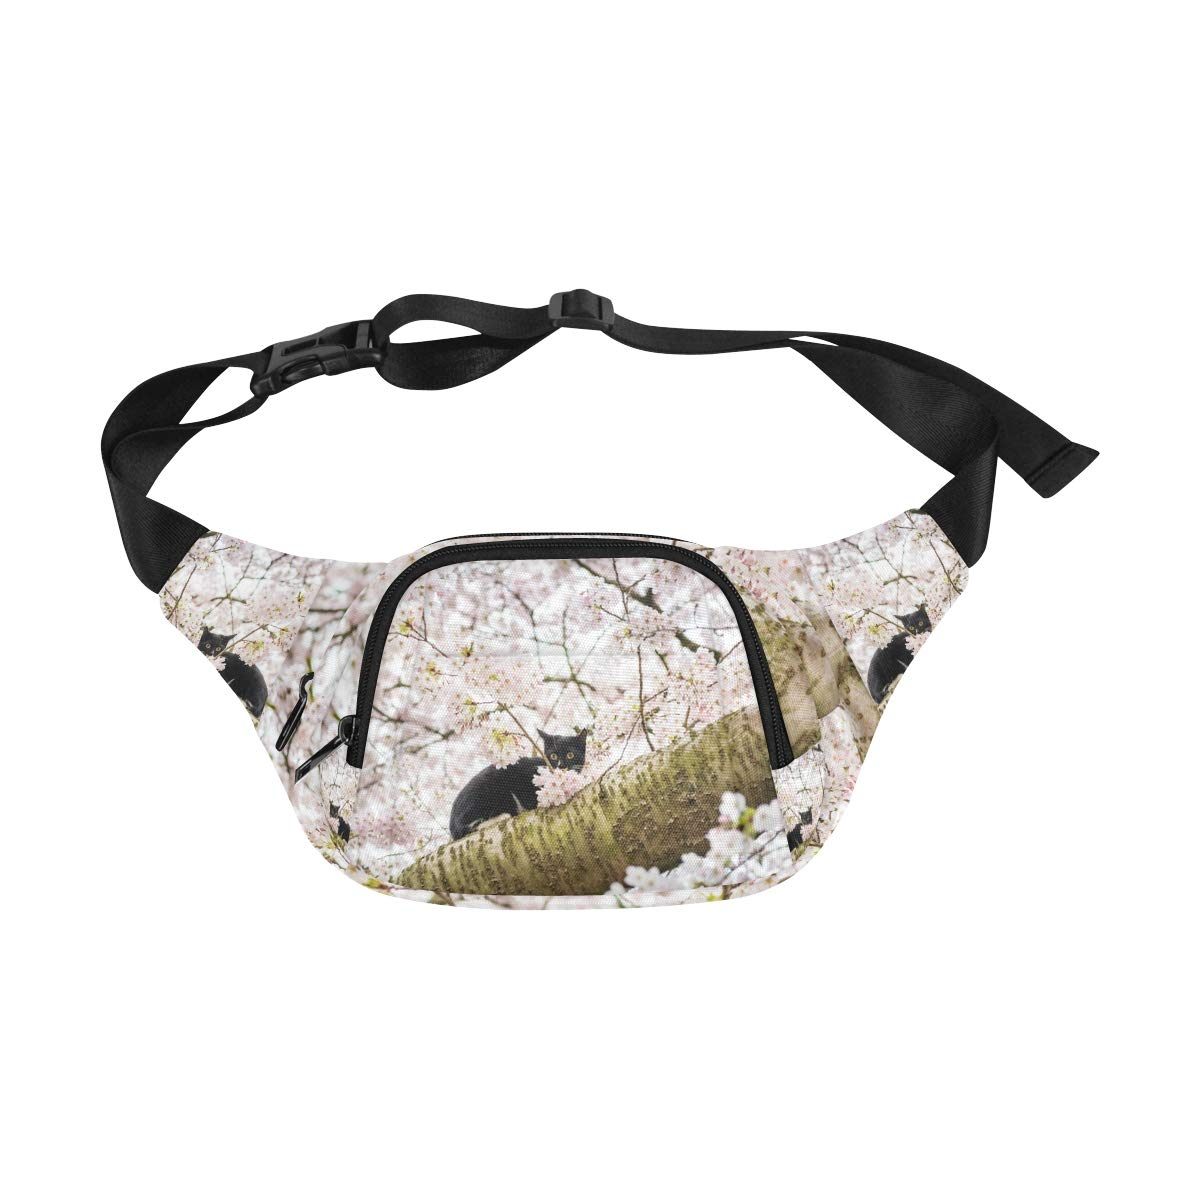 Cat And Flowers Of The Blossom Cherry Fenny Packs Waist Bags Adjustable Belt Waterproof Nylon Travel Running Sport Vacation Party For Men Women Boys Girls Kids